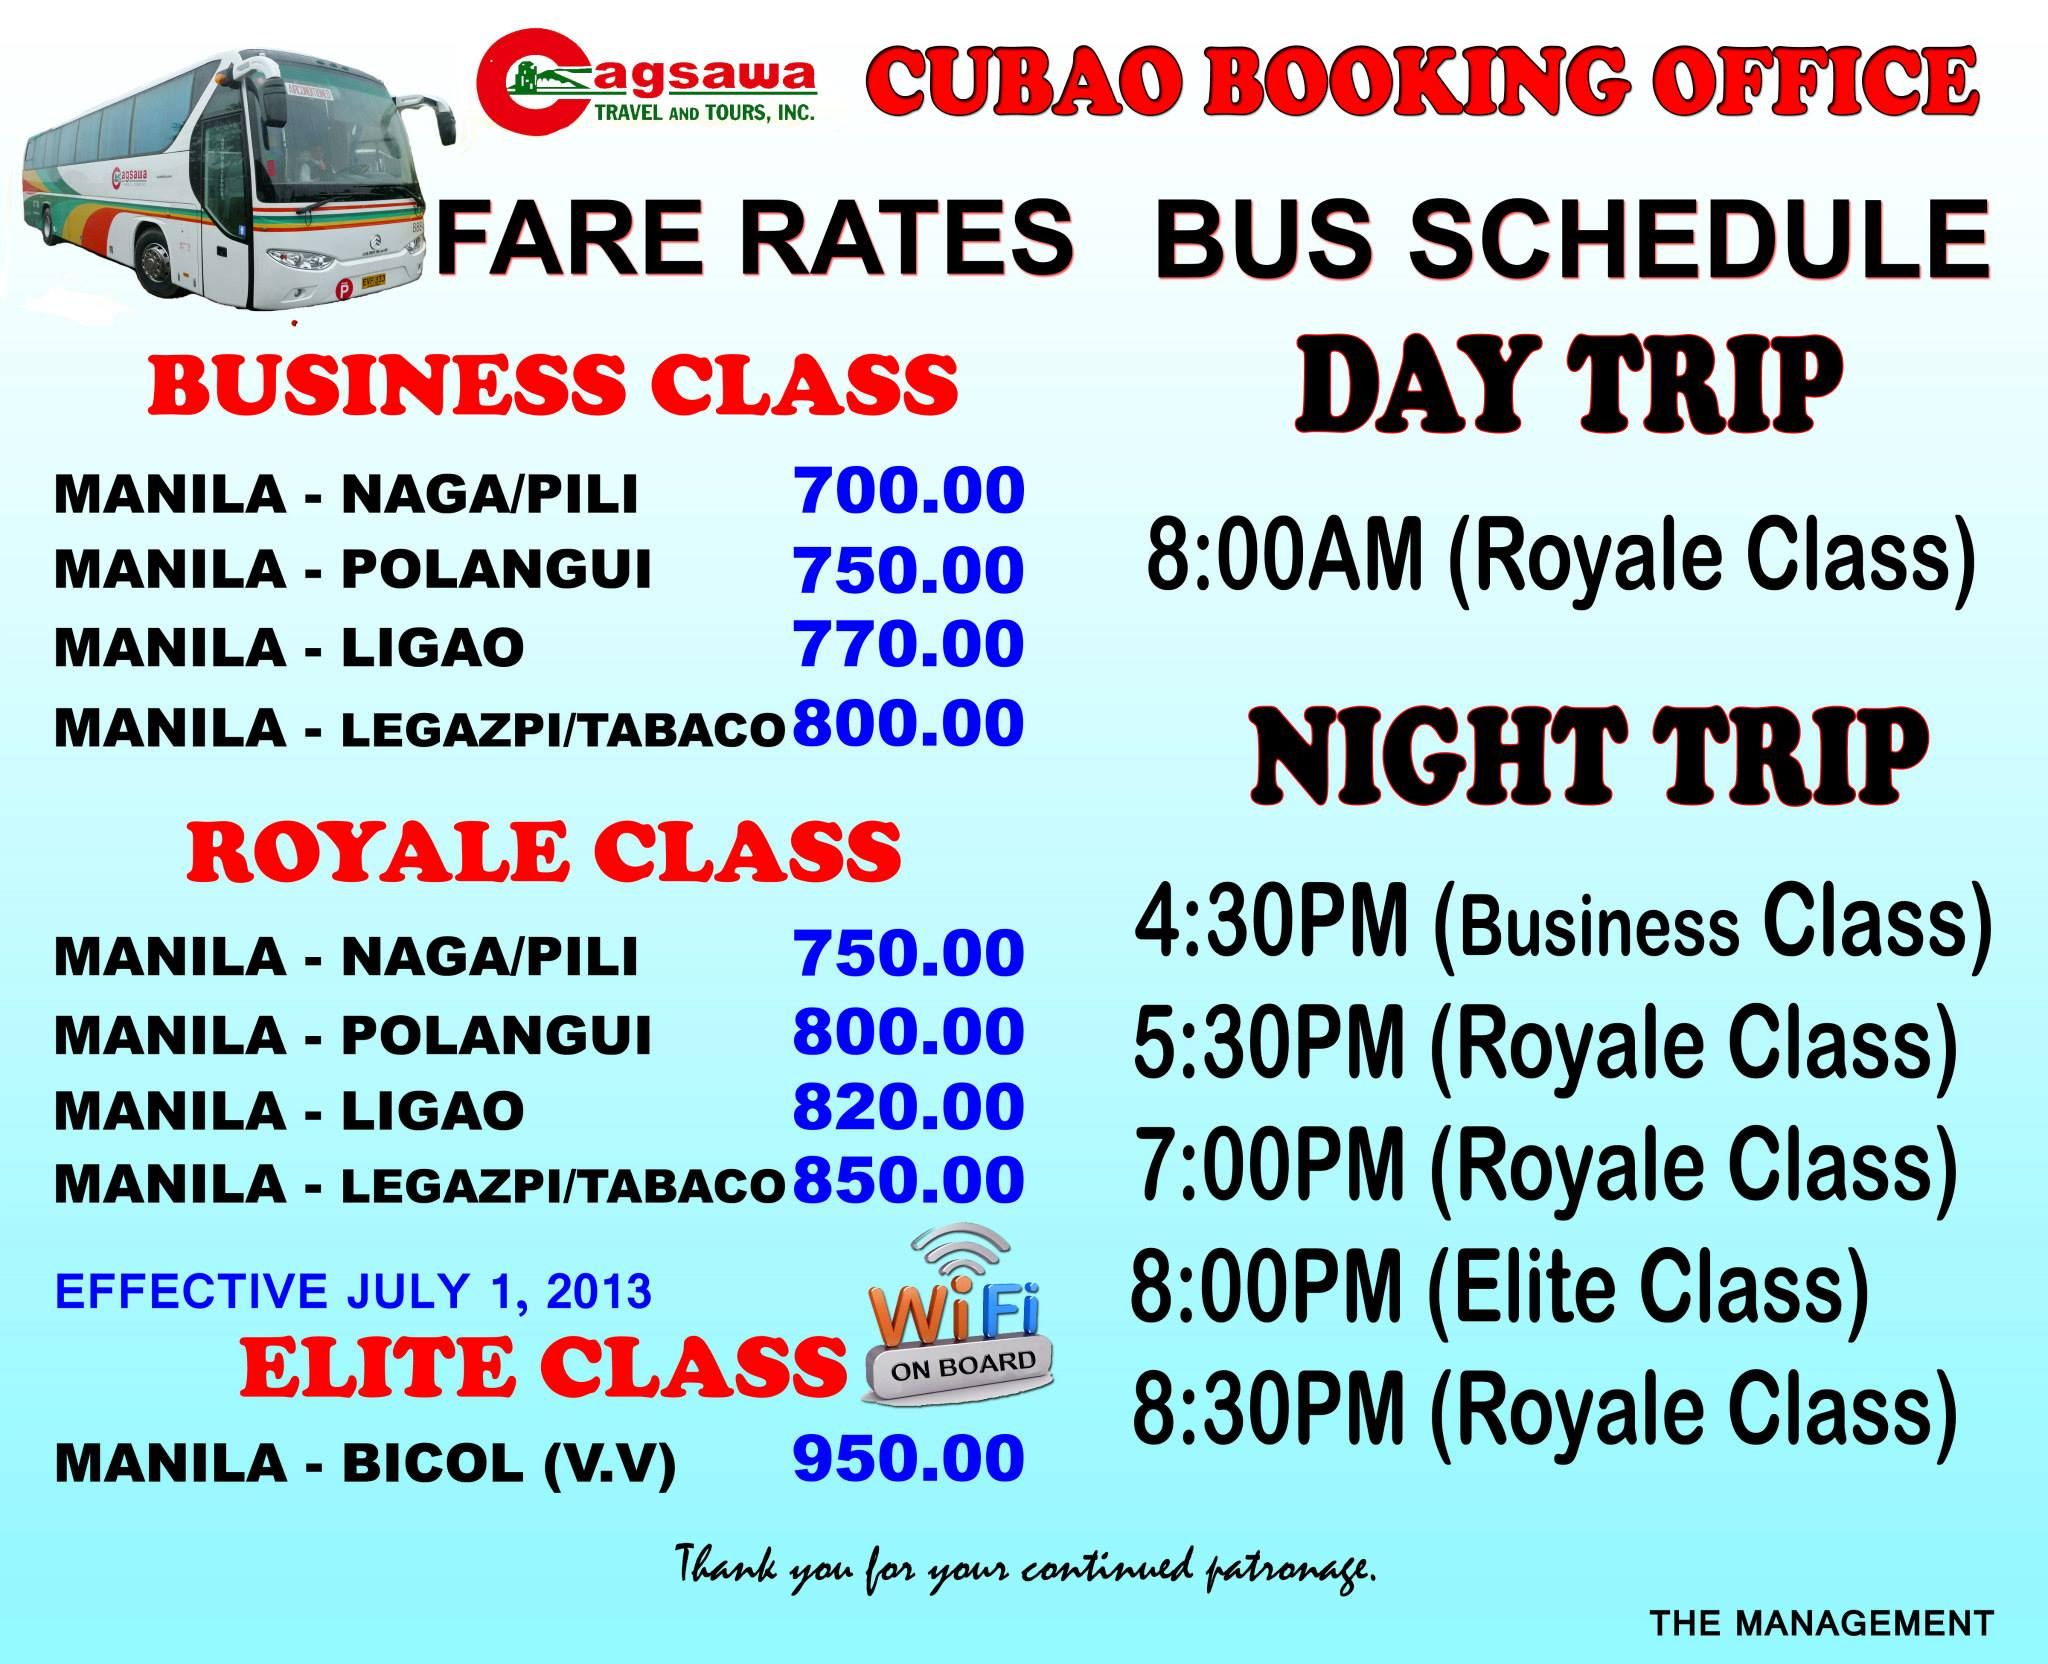 cagsawa-bus-schedules-and-fare.jpg